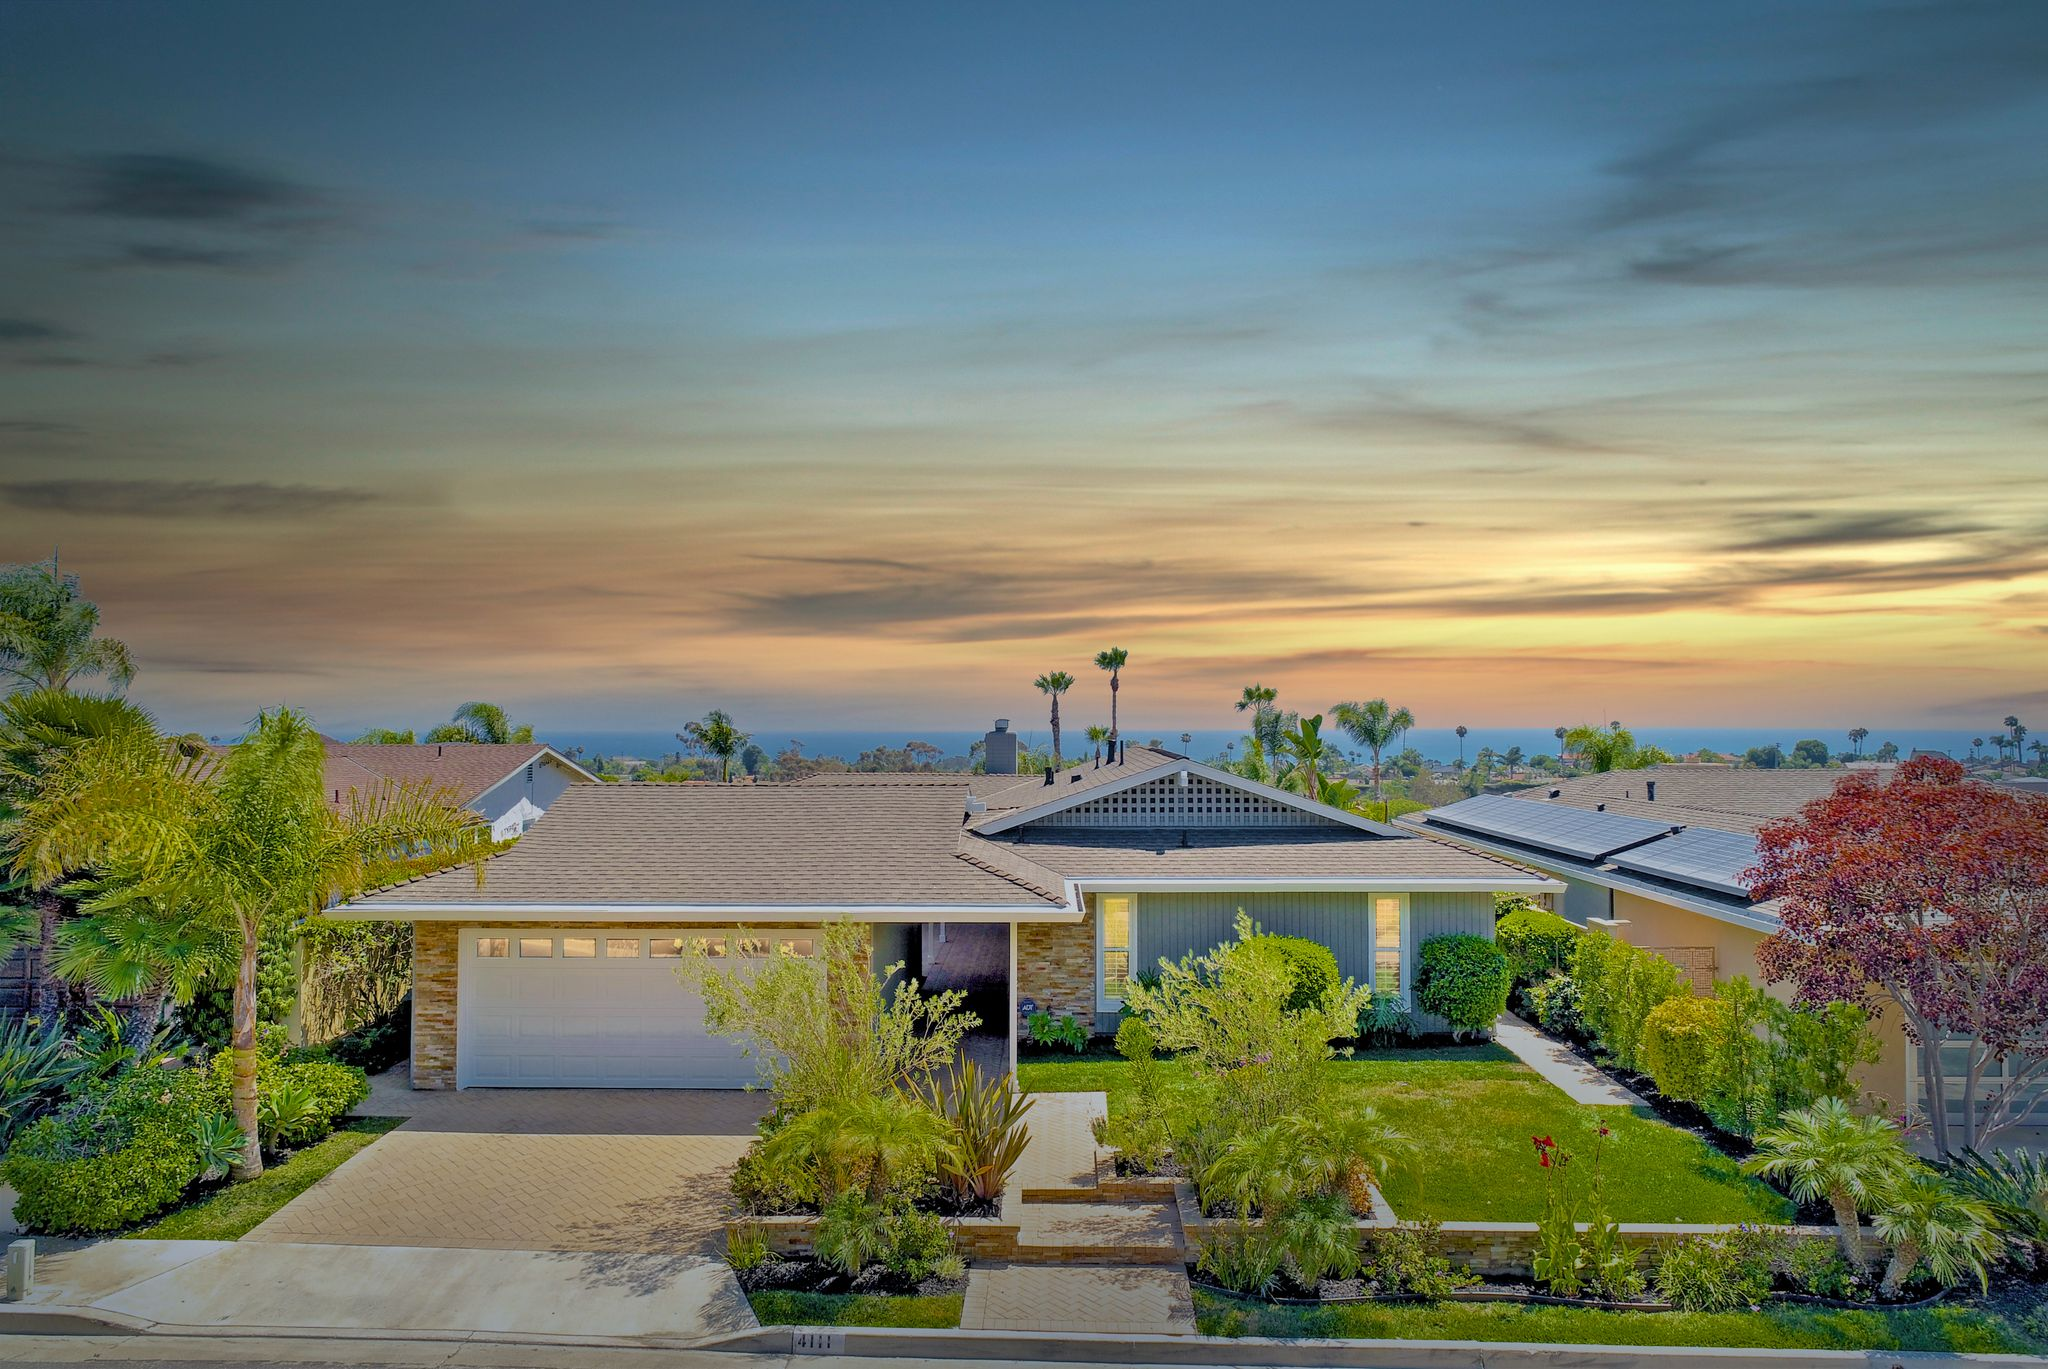 4111 Calle Mayo & 4111 Calle Mayo For Sale - San Clemente CA | Trulia azcodes.com